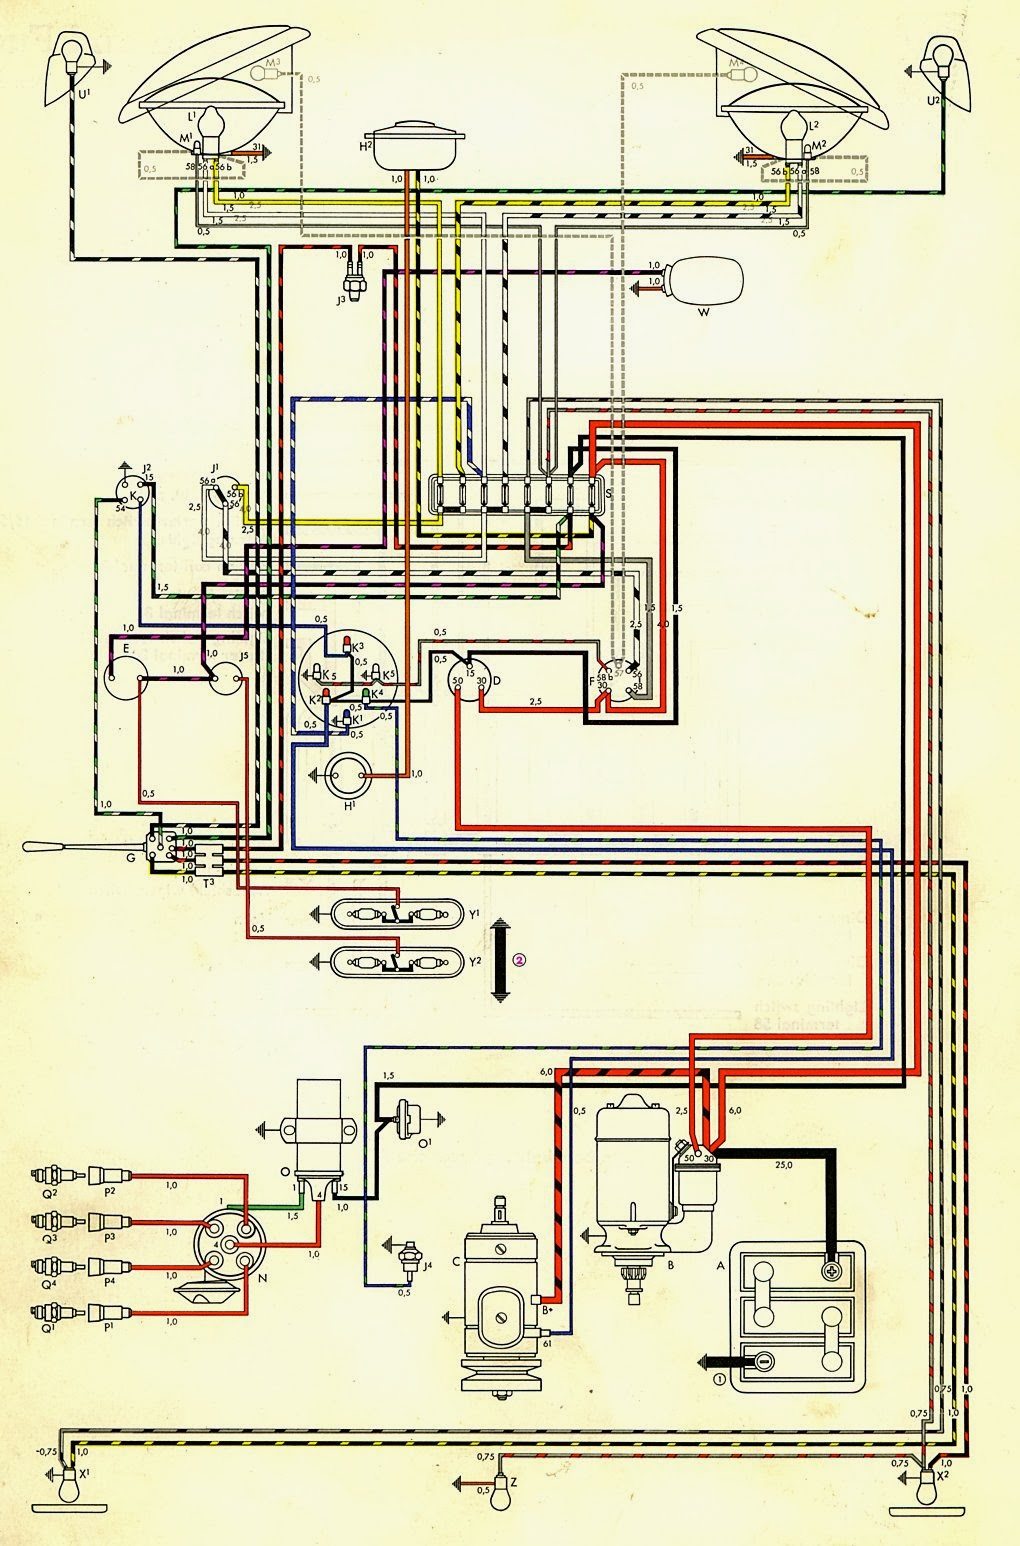 1969 vw type 3 wiring diagram vw r32 wiring diagram wiring vw wiring color code vw wiring colour codes [ 1020 x 1546 Pixel ]